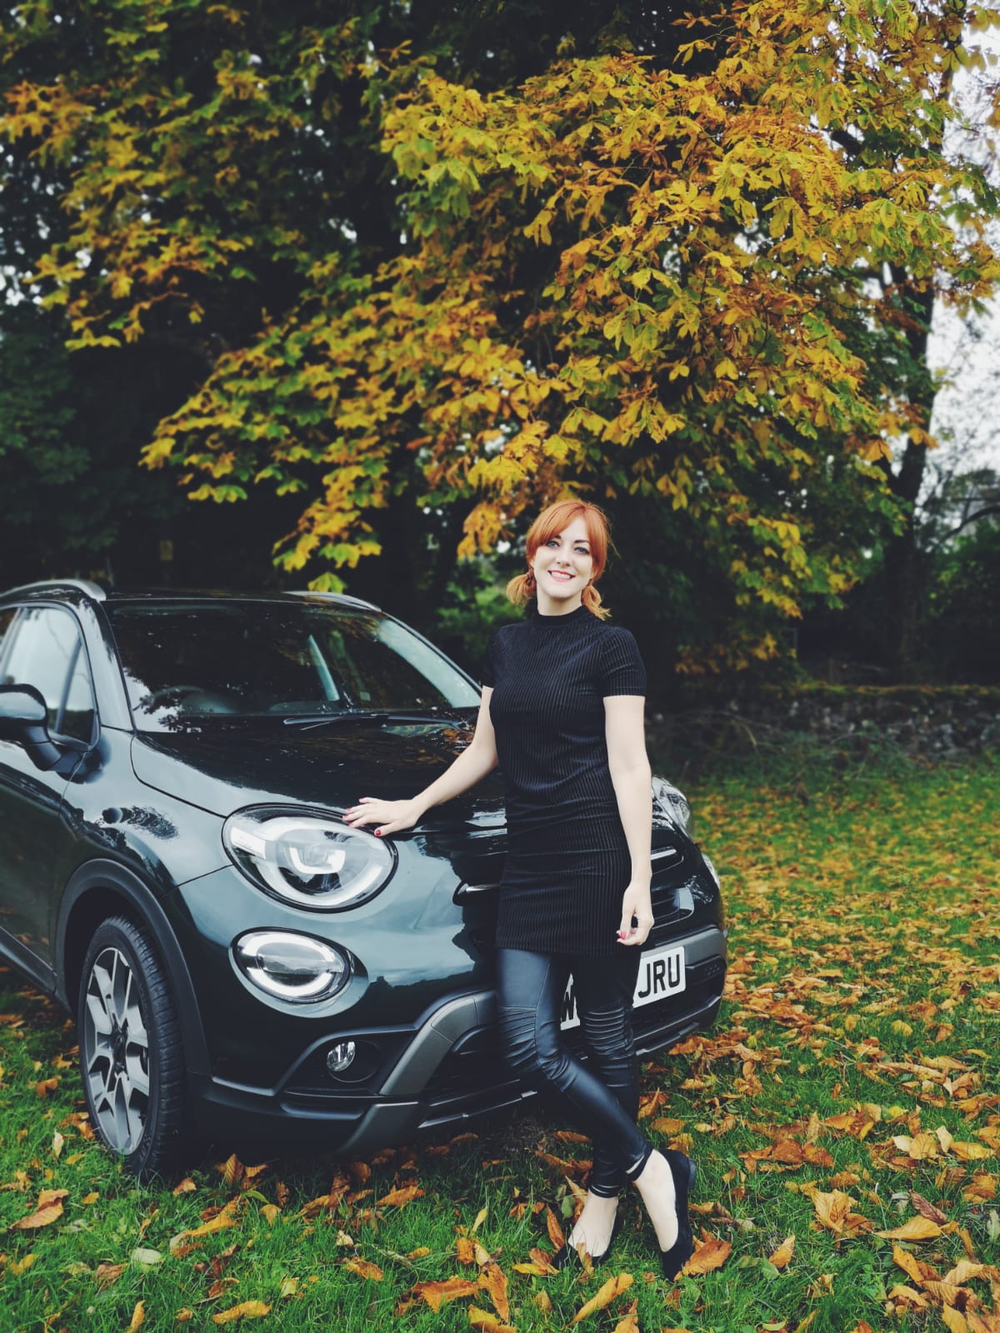 Blogger Lucie Loves test-driving the new Fiat 500x Cross Plus SUV